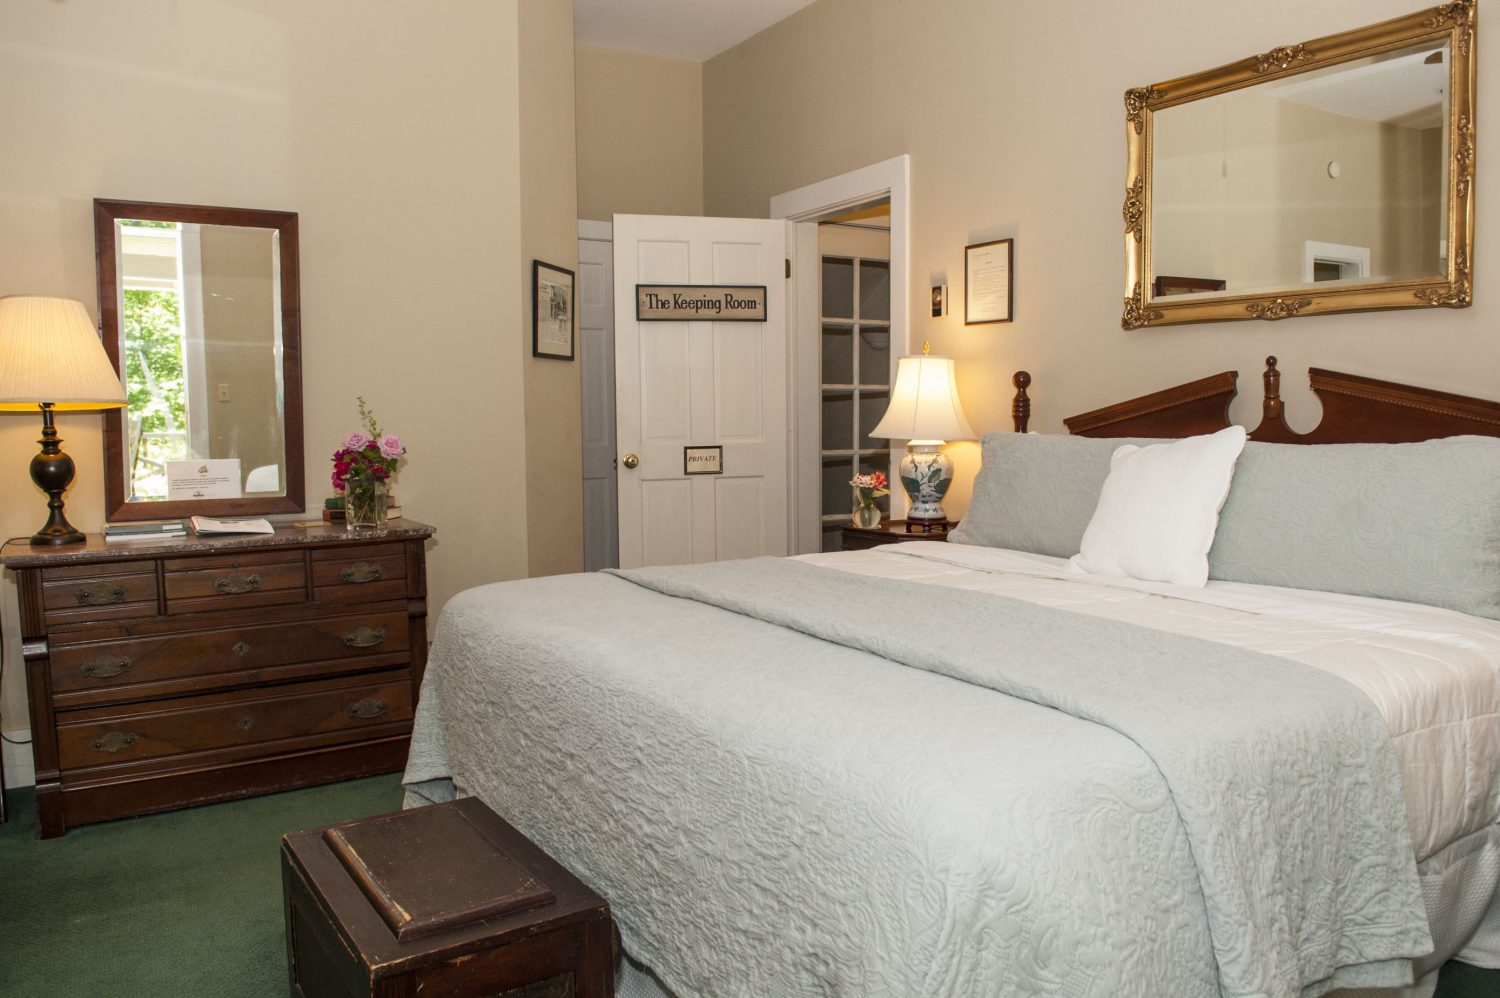 Unwind in the Keeping Room